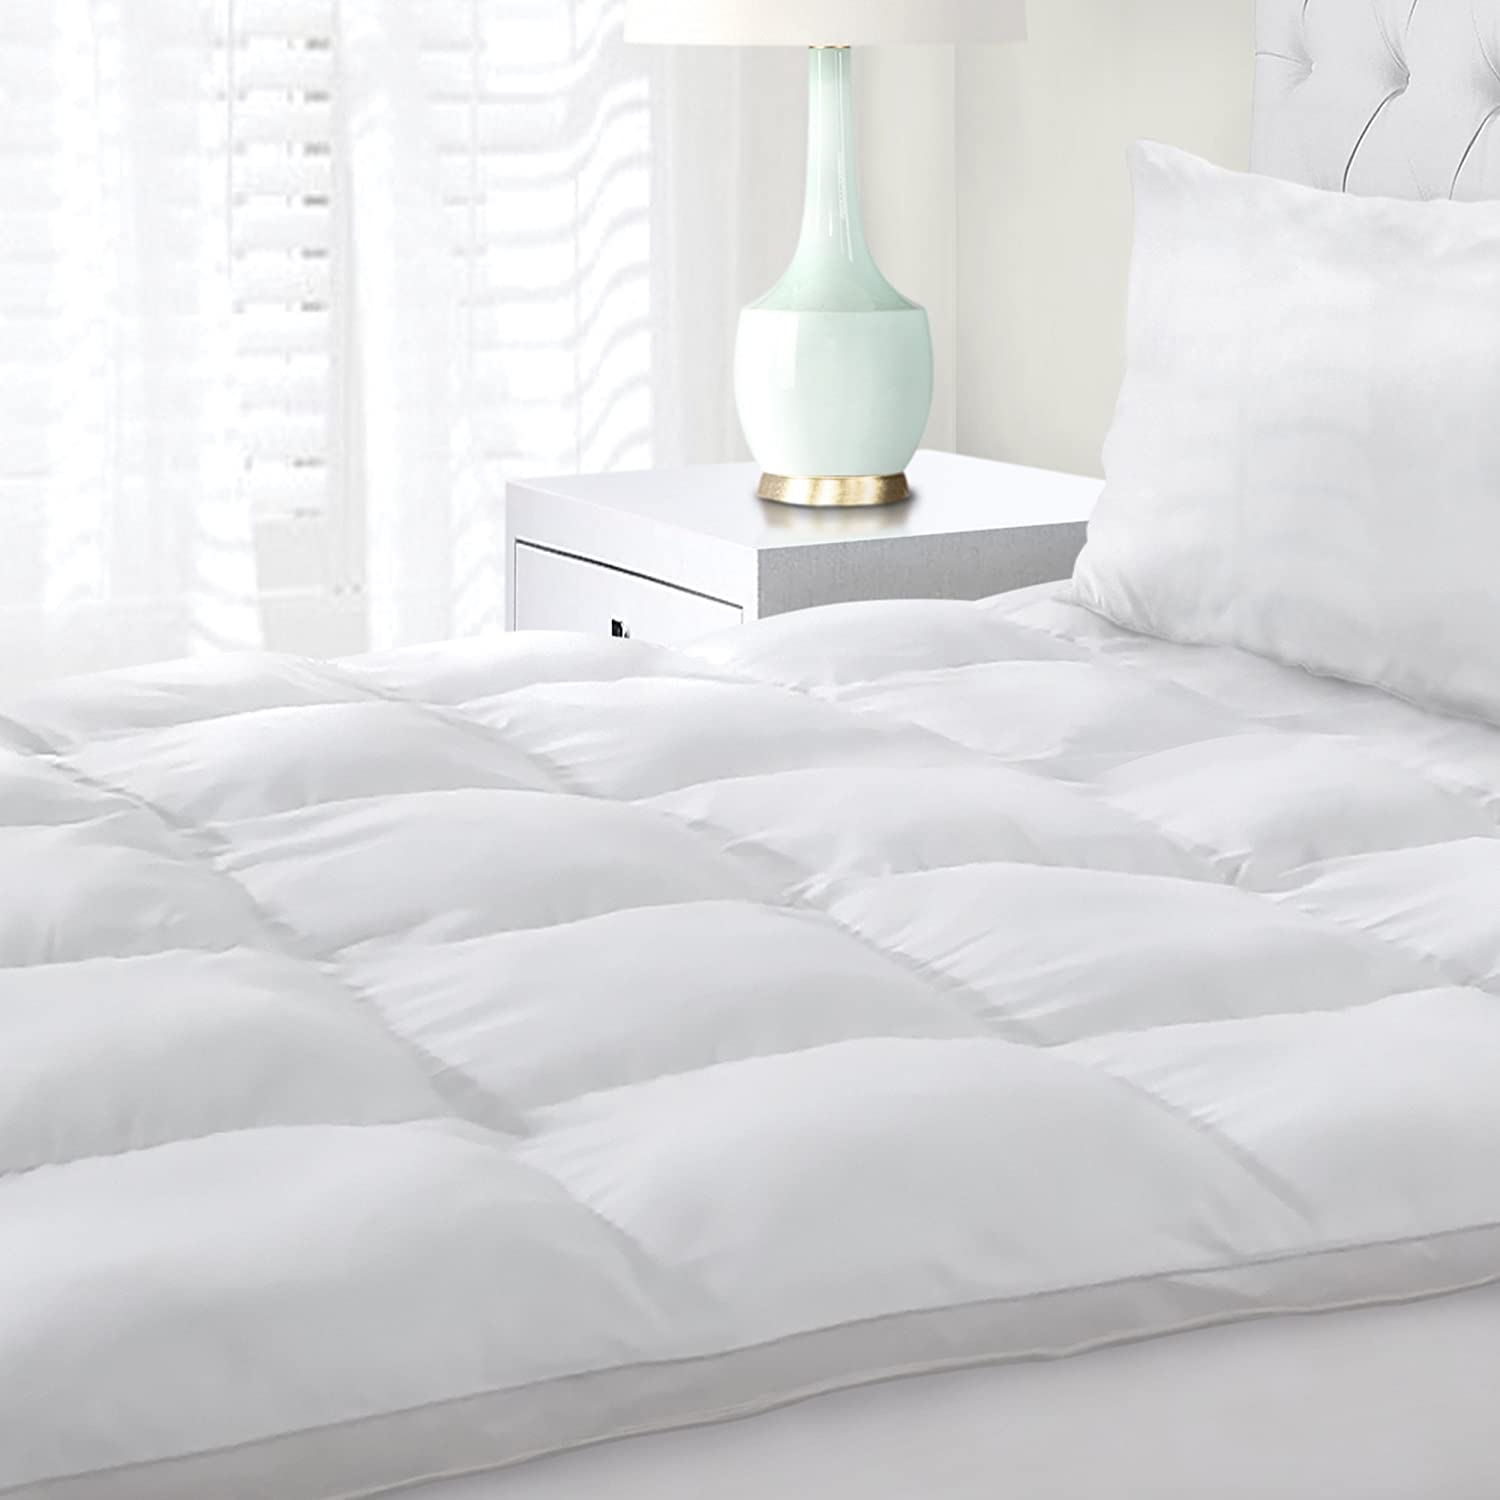 pillow main pdp buyhypnos topper superb top johnlewis mattress online com double rsp firm spring at pocket hypnos